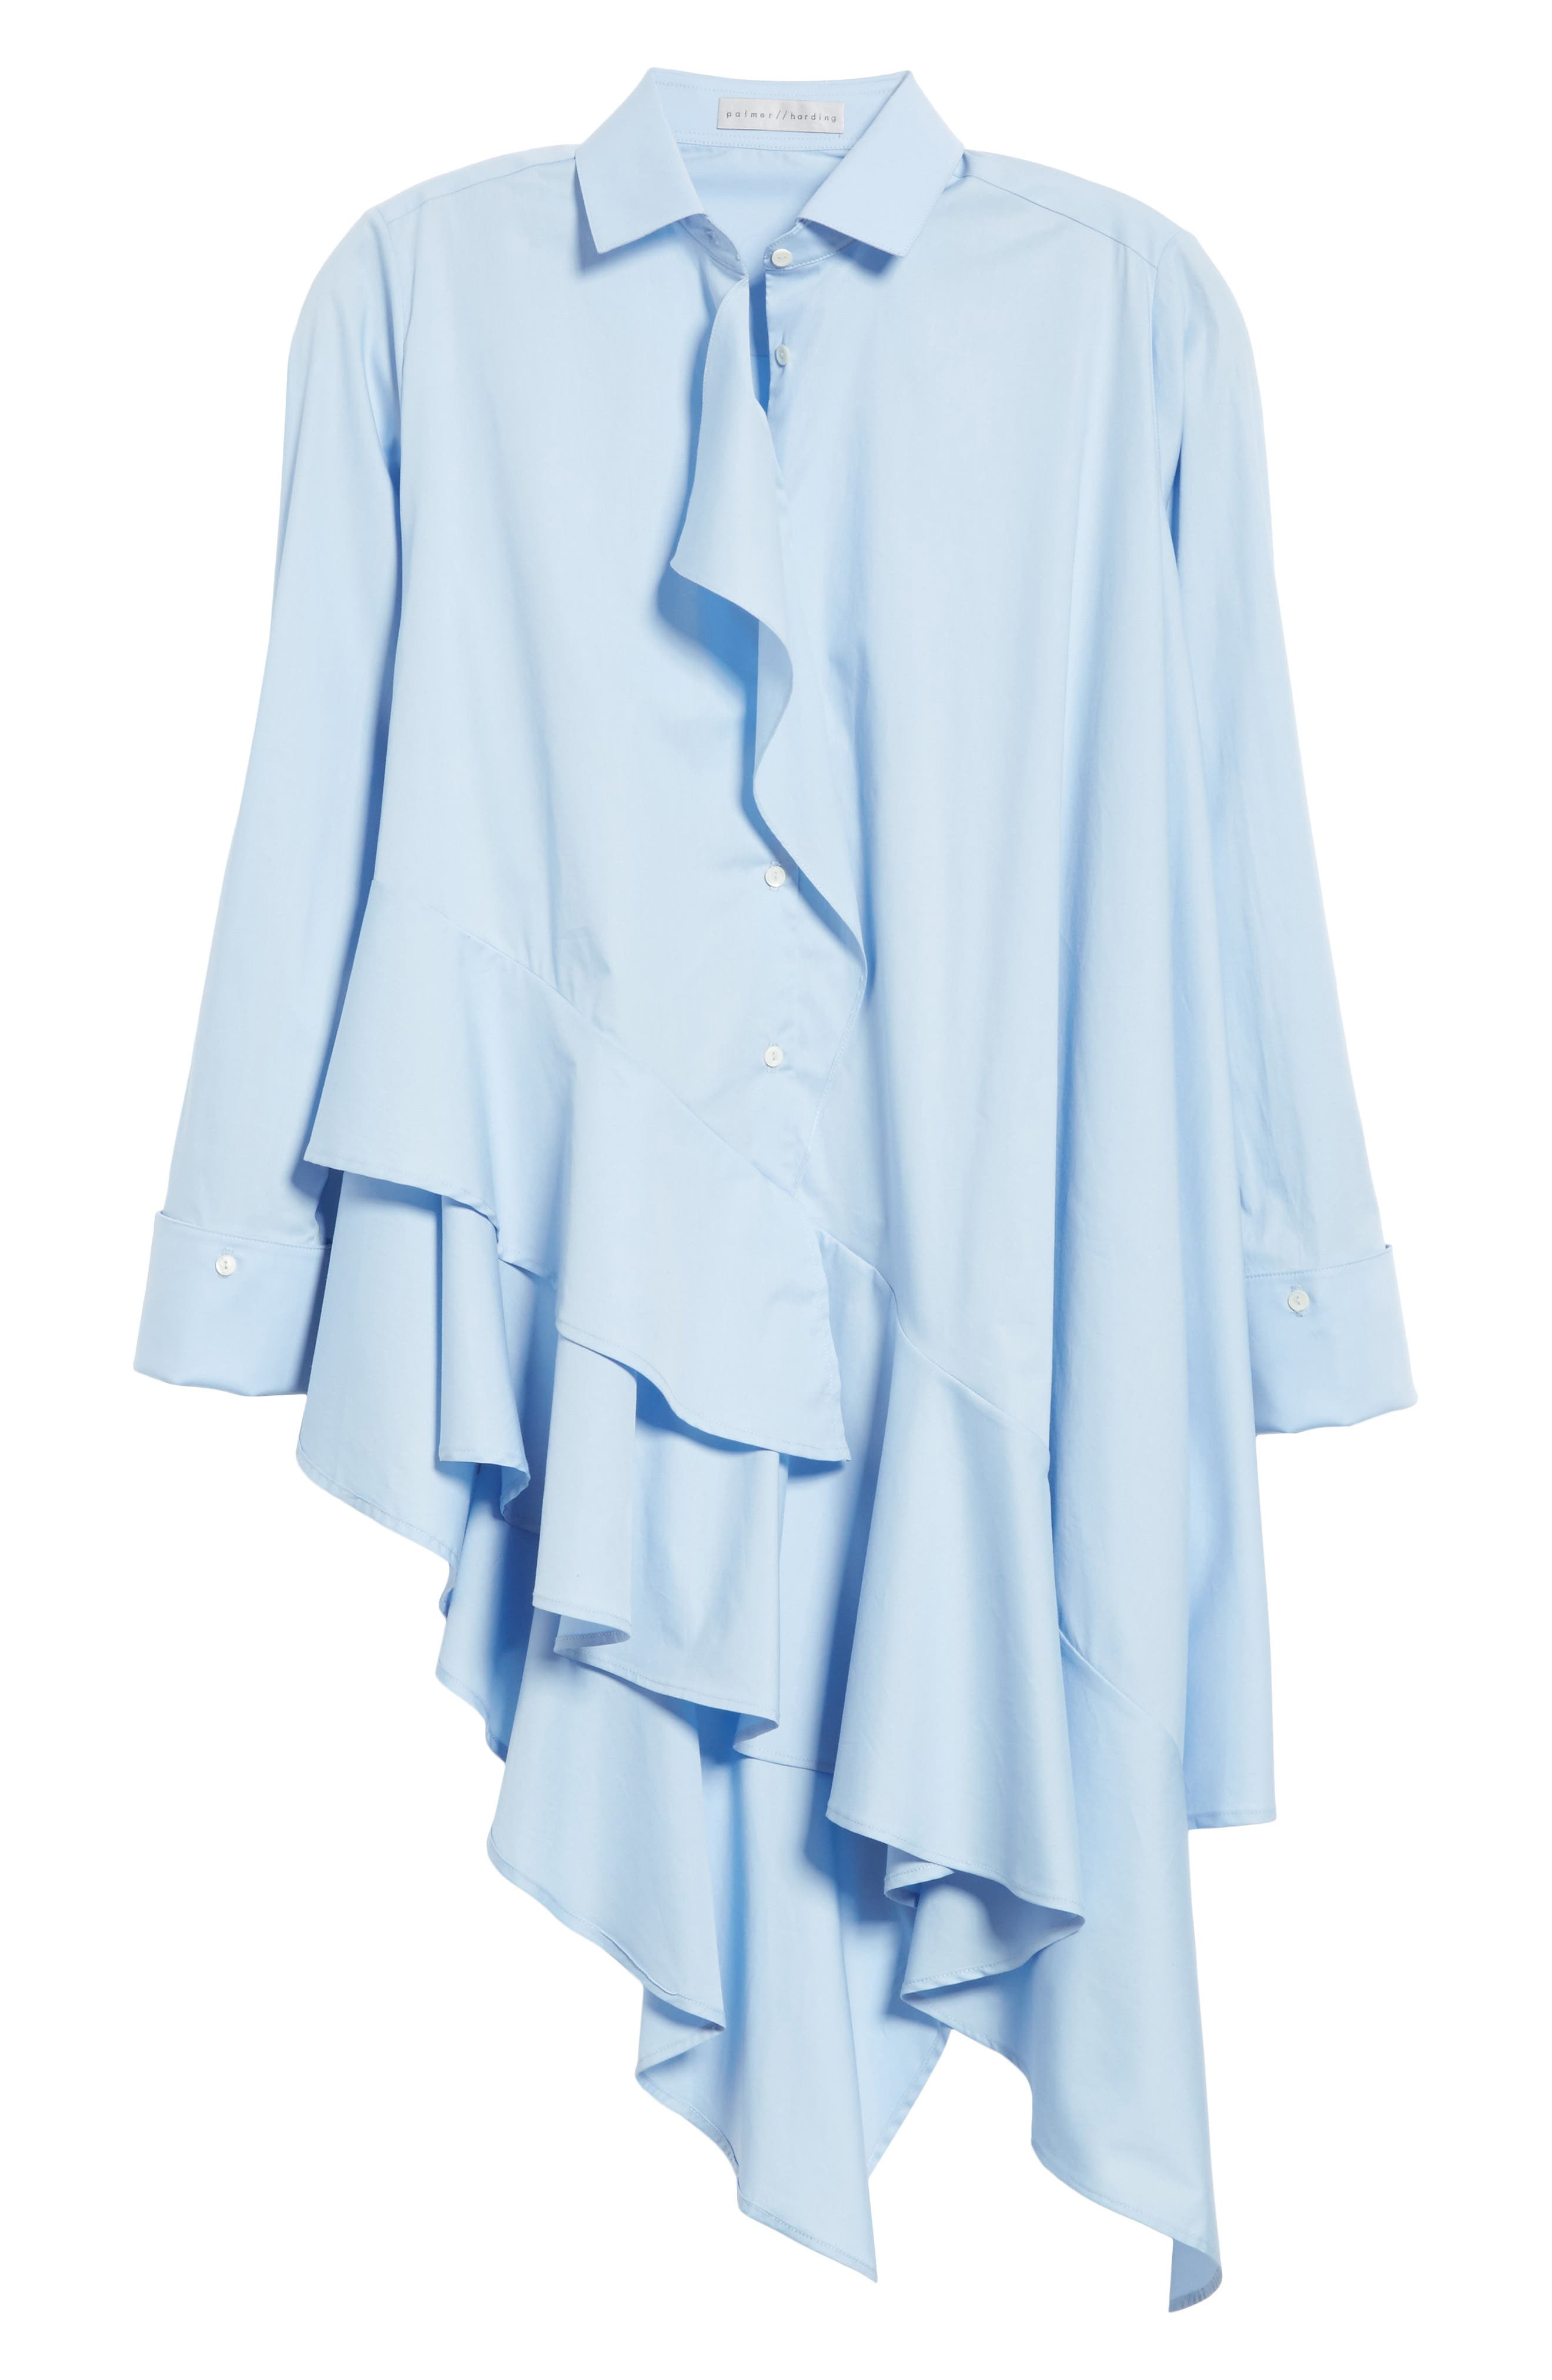 Spicy Ruffle Shirt,                             Alternate thumbnail 6, color,                             400